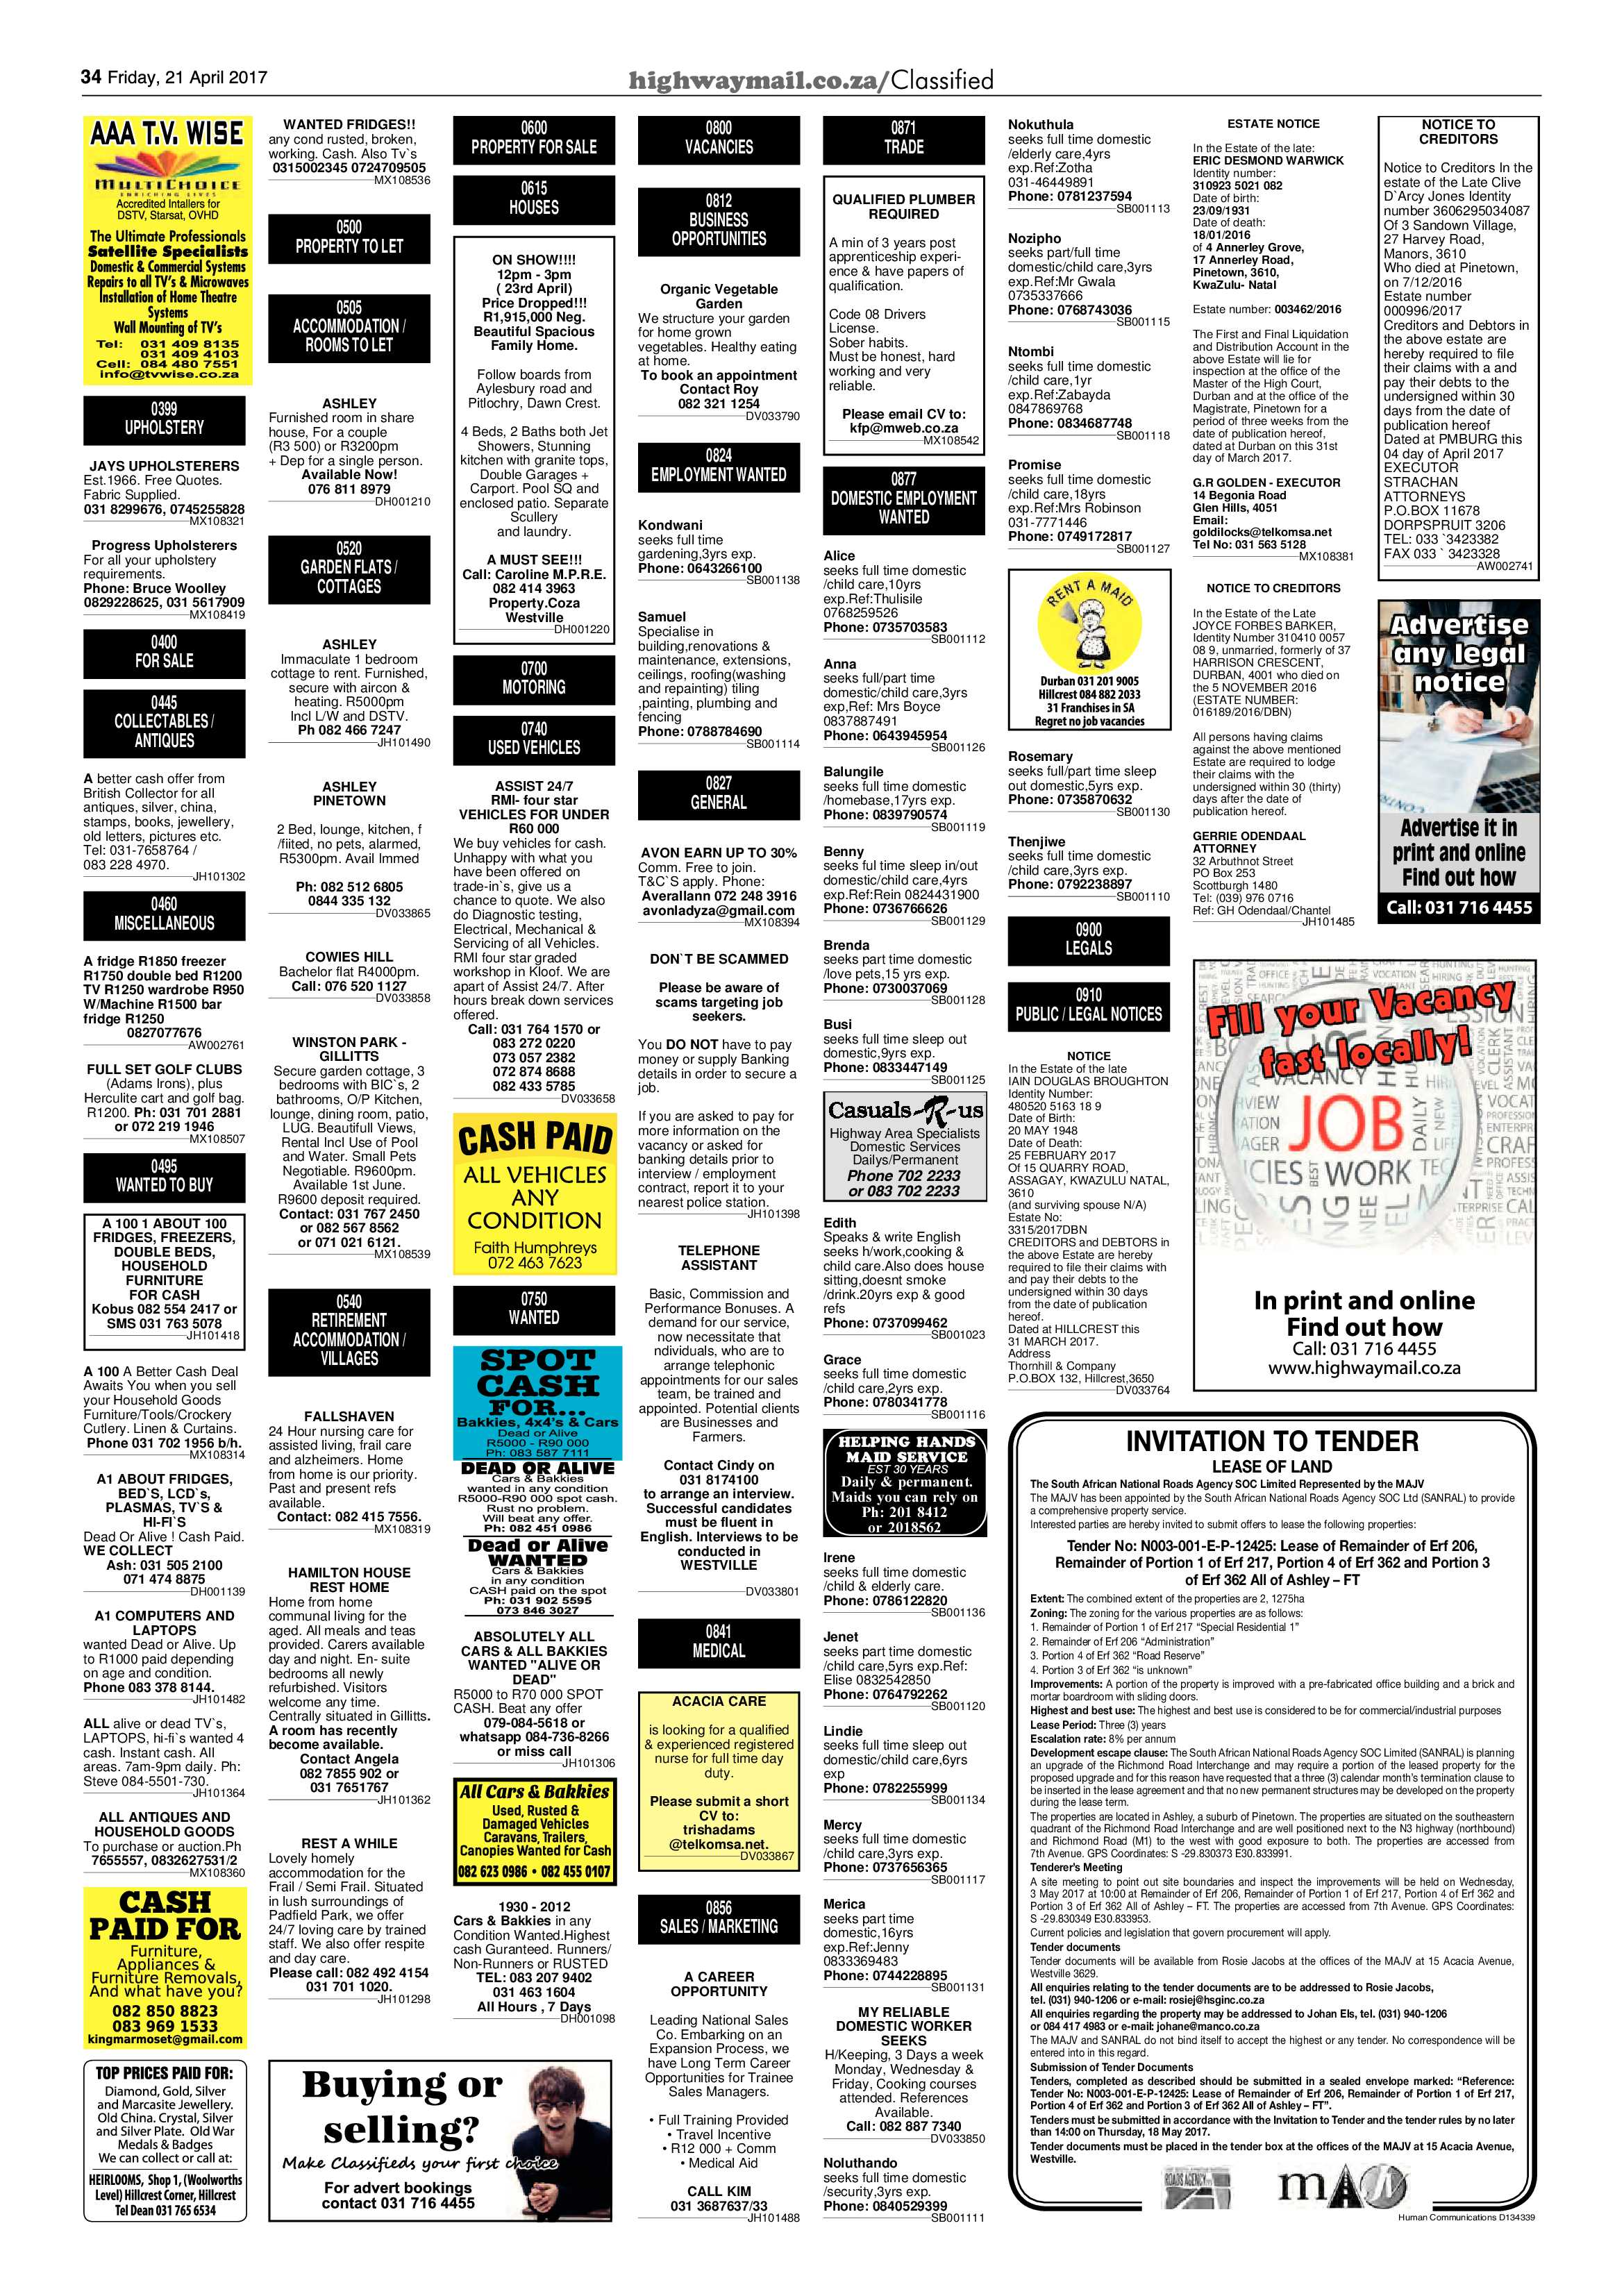 highway-mail-21-april-2017-epapers-page-34